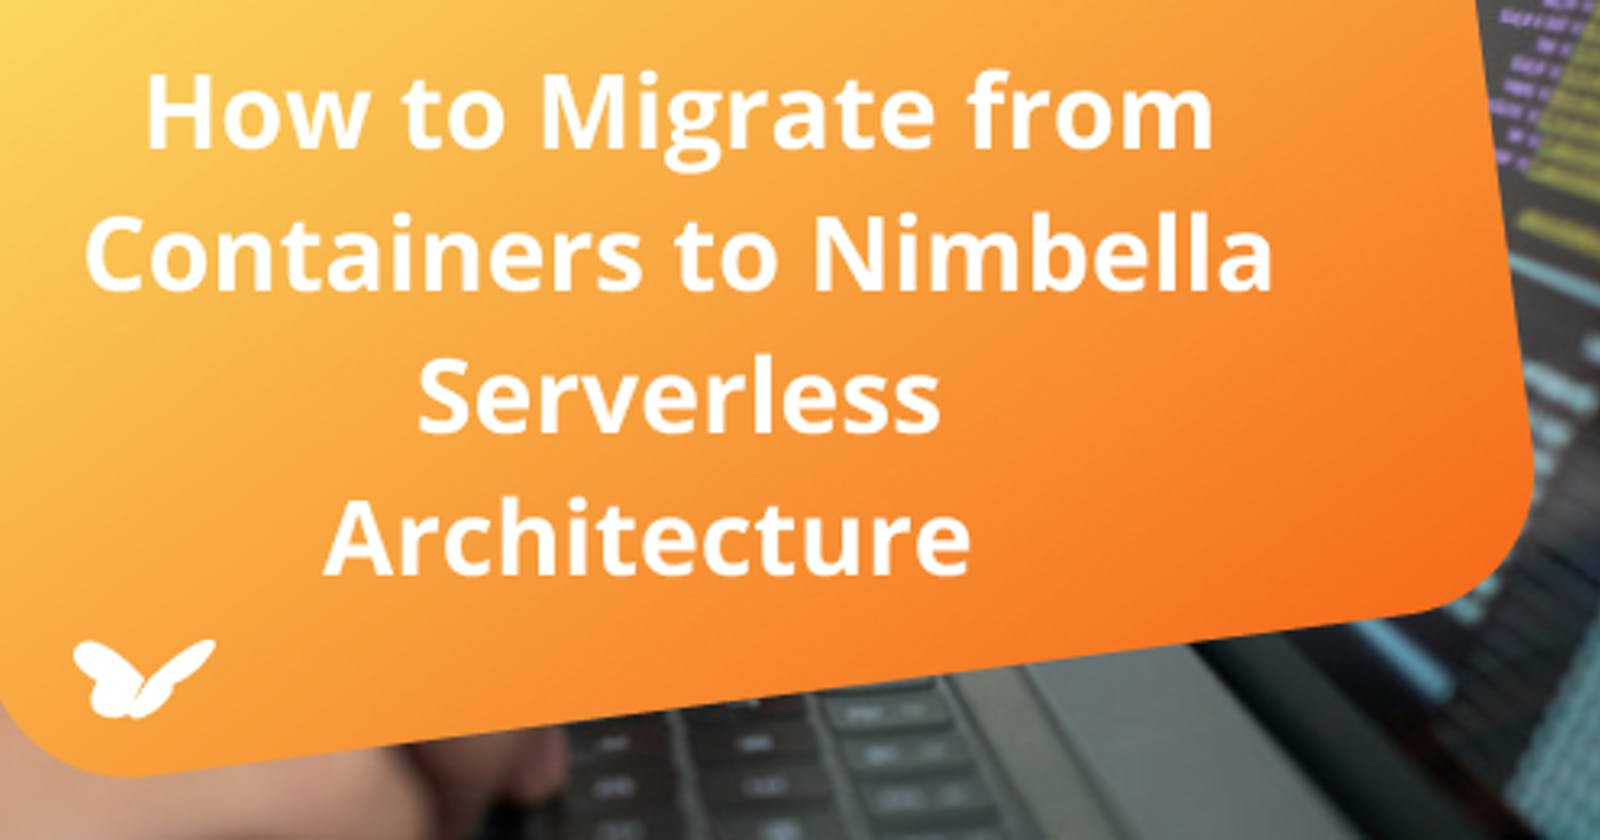 How to Migrate from Containers to Nimbella Serverless Architecture